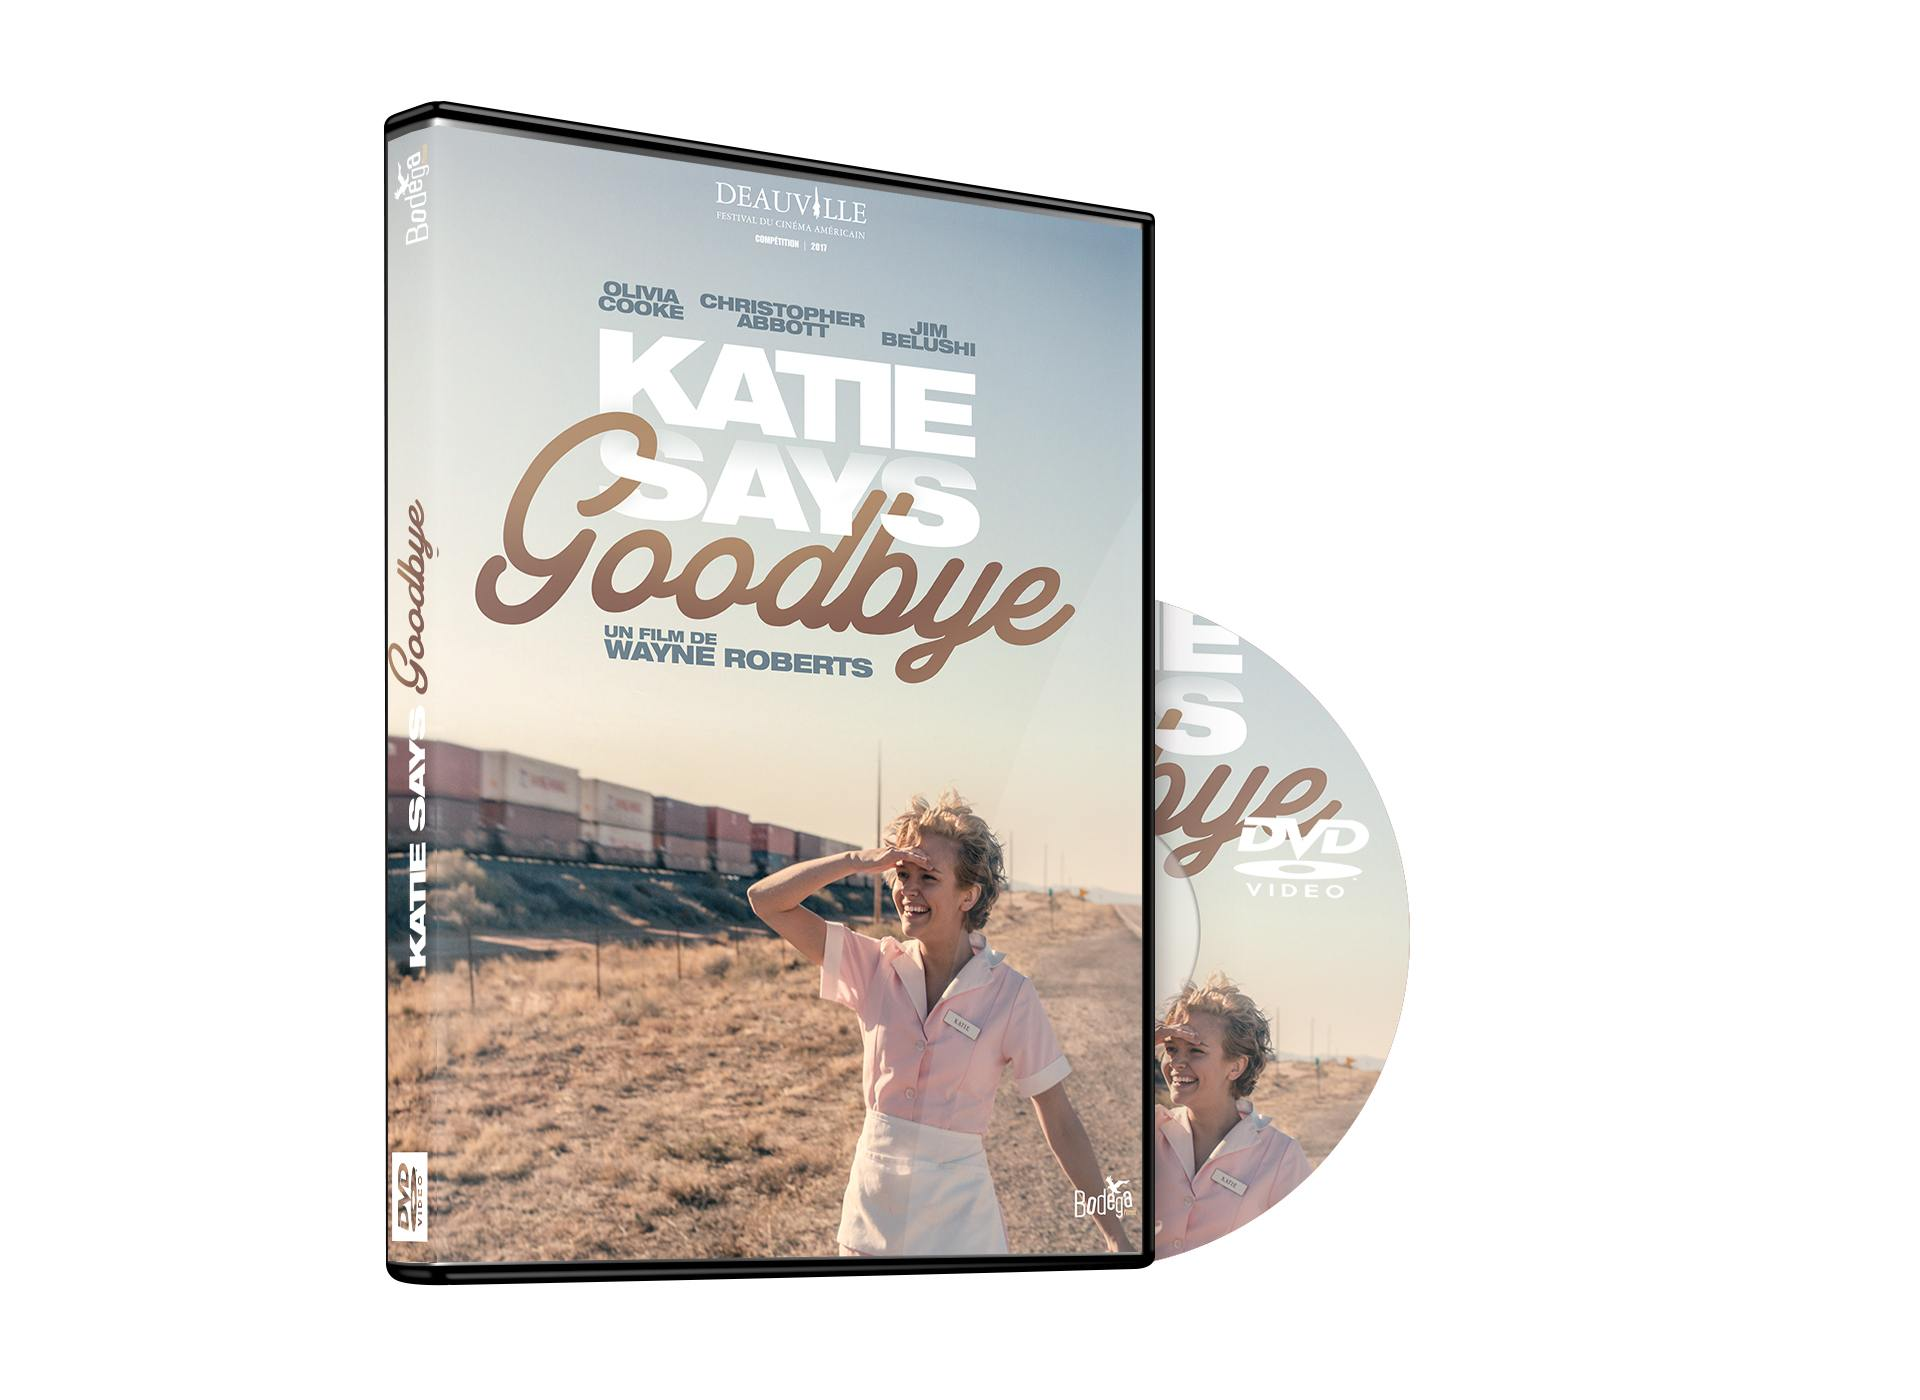 Katie says goodbye - dvd